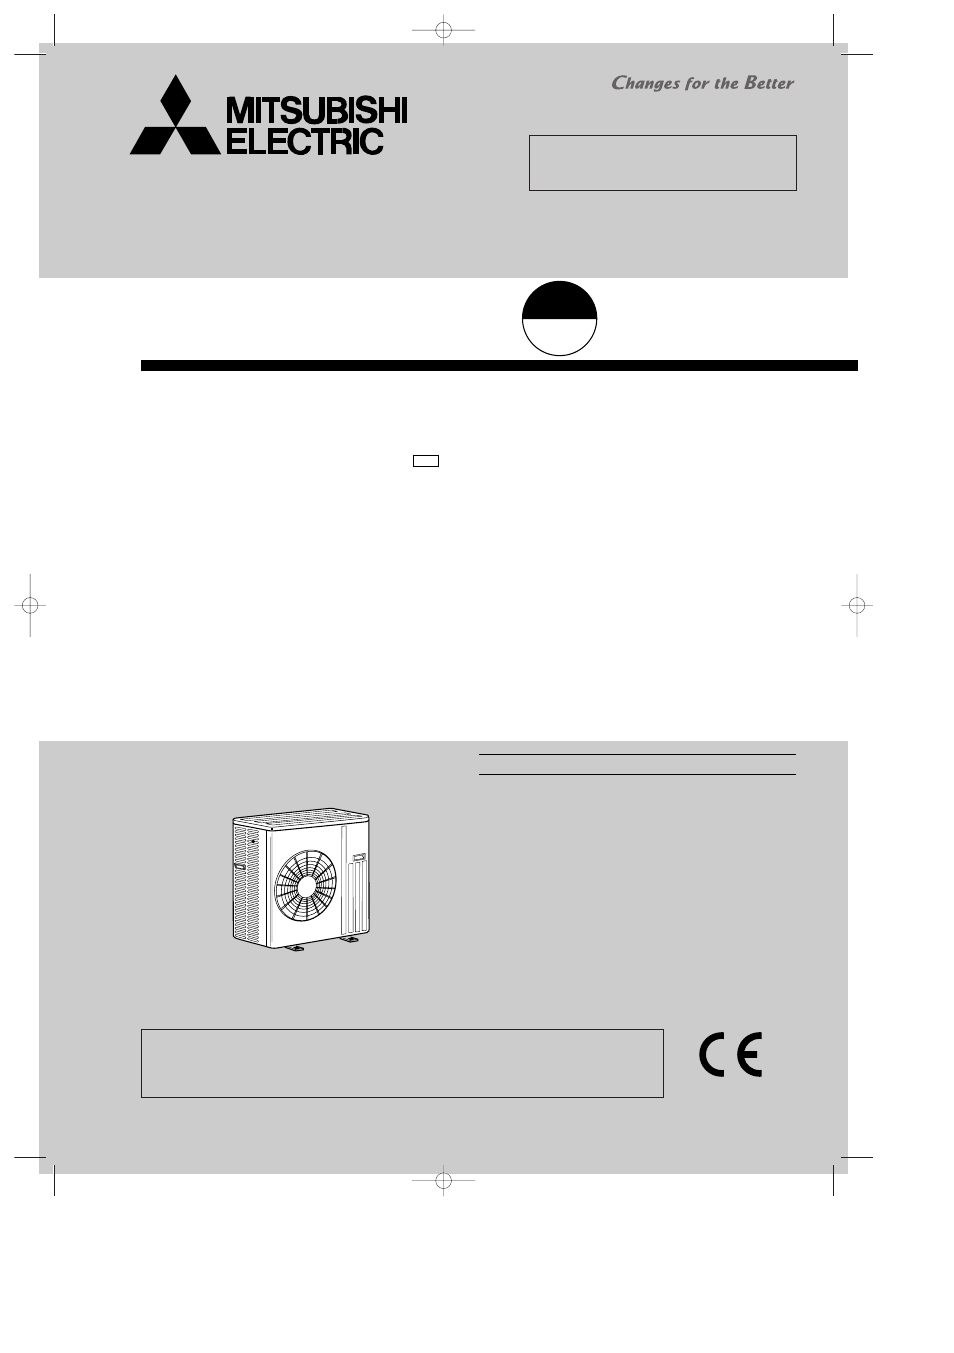 mitsubishi electric muz gb50va user manual 40 pages rh manualsdir com mitsubishi electric puhy service manual mitsubishi electric aircon service manual